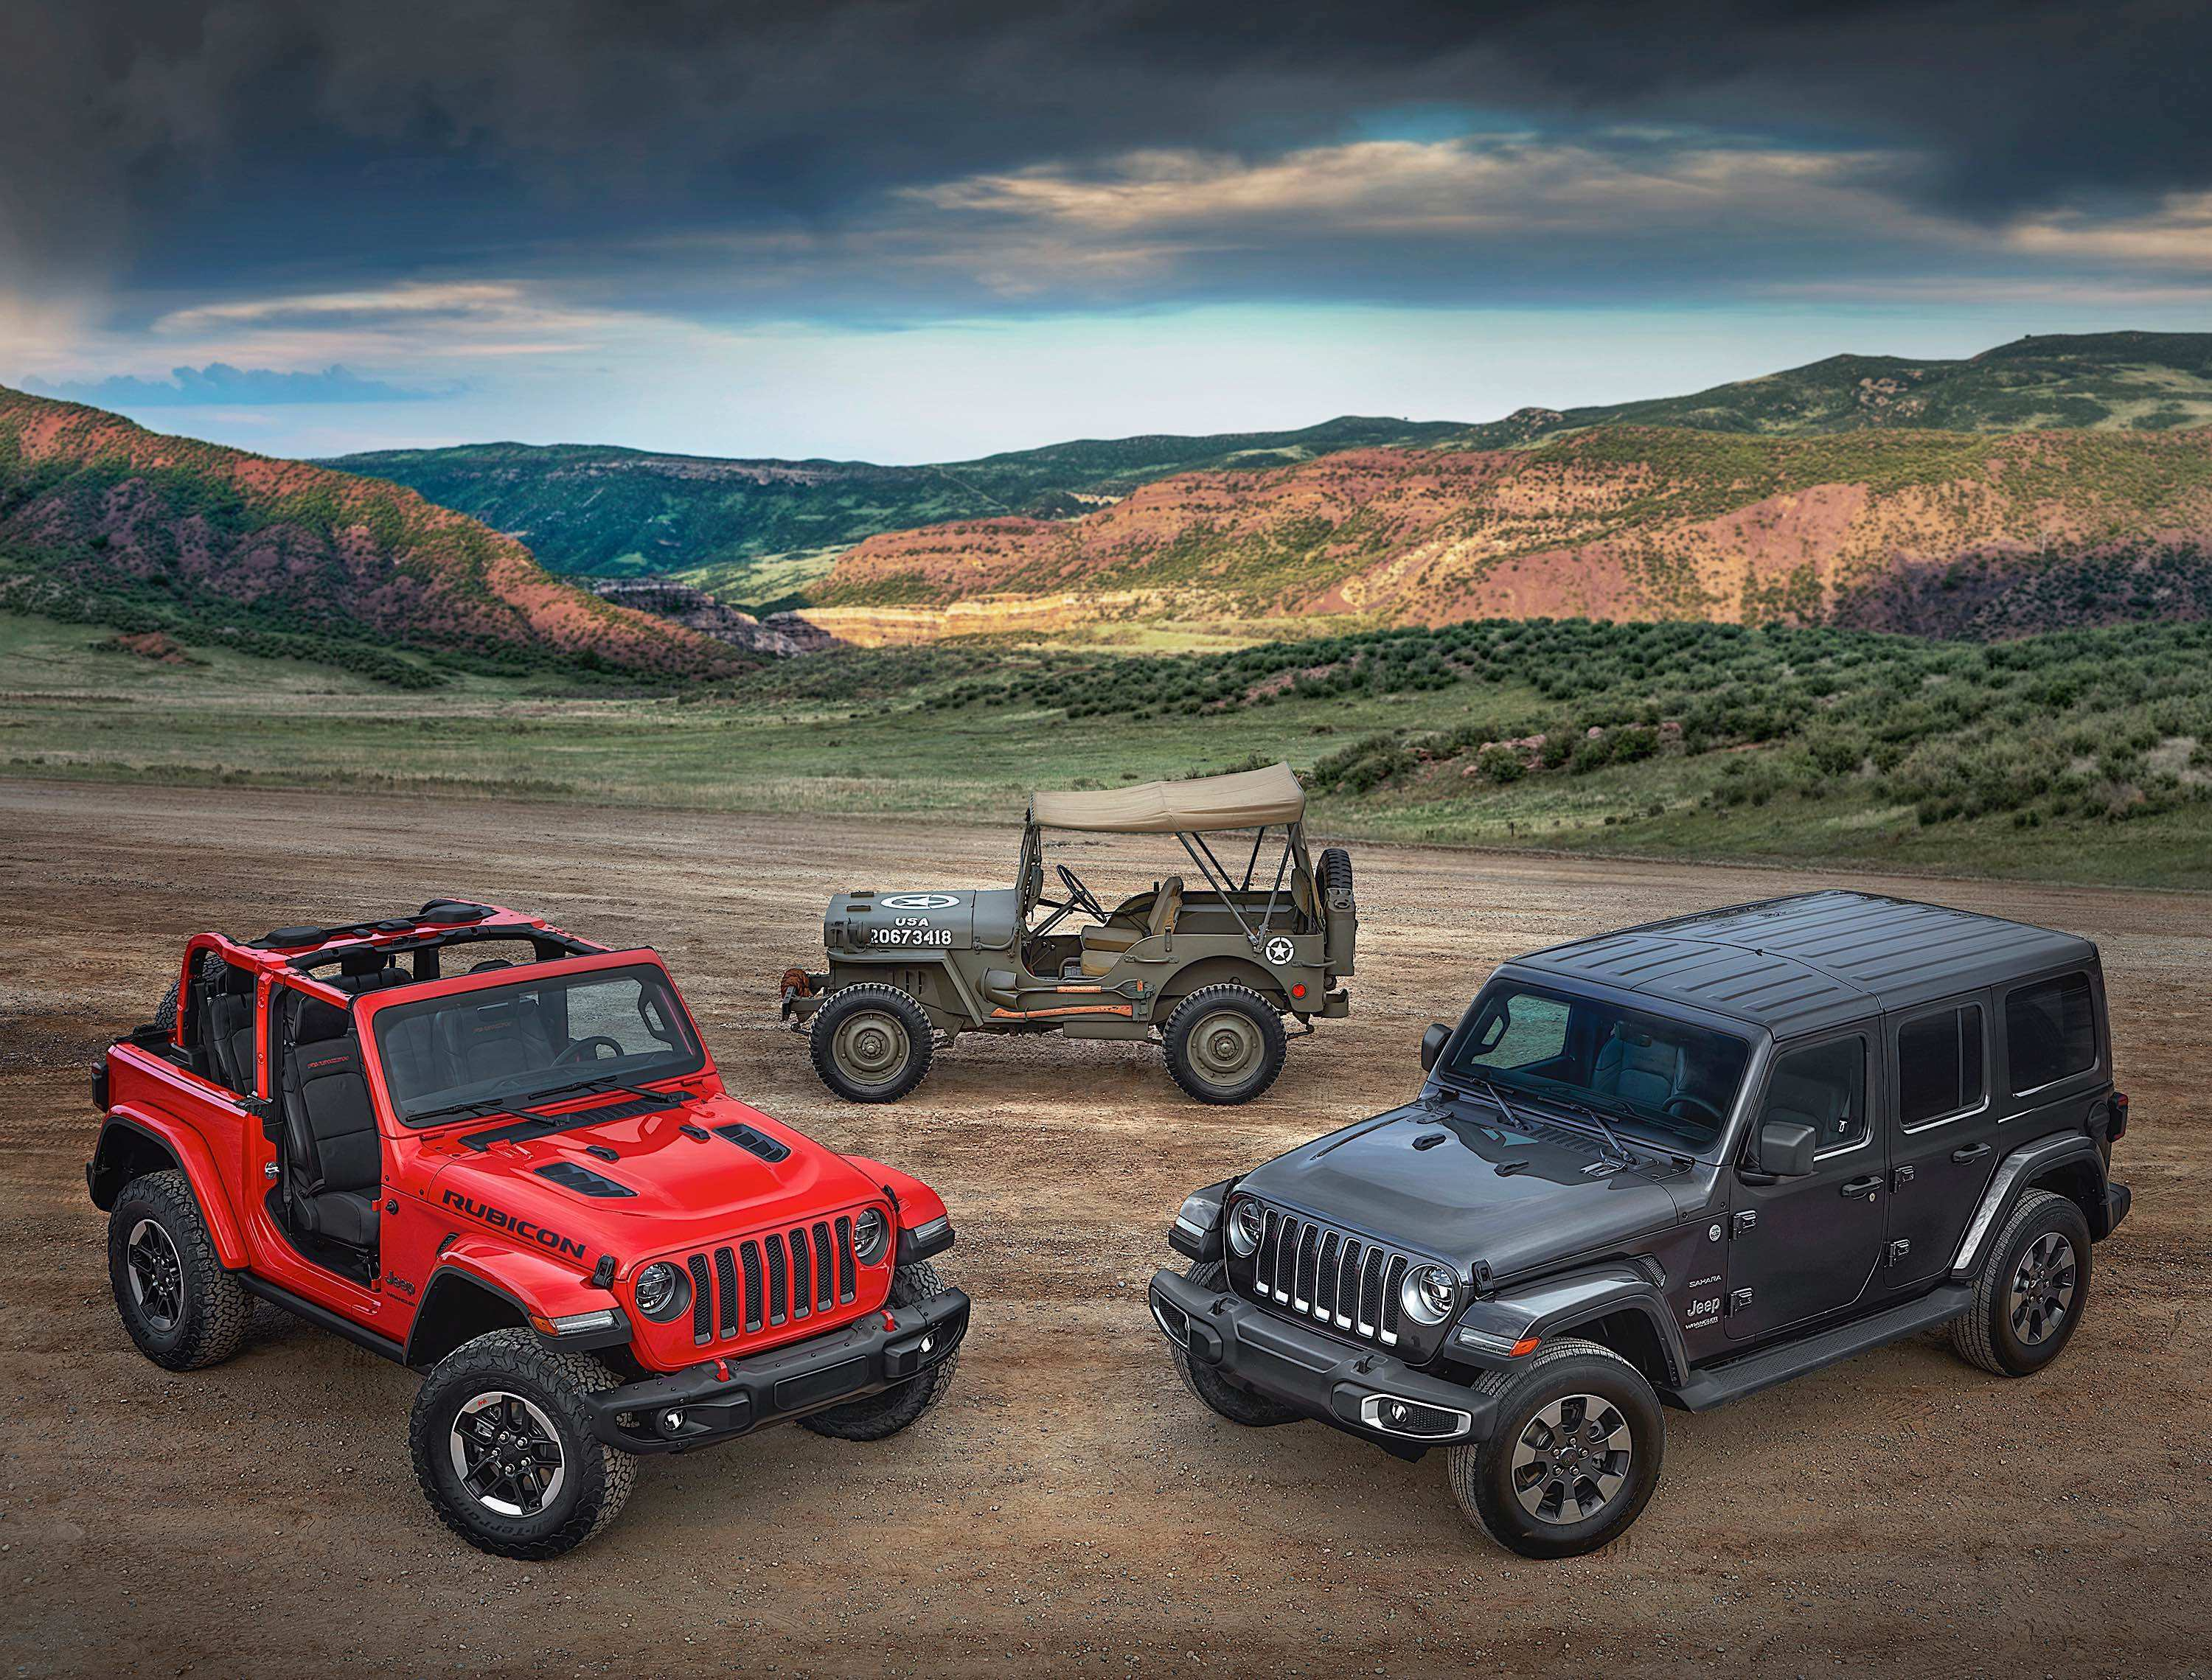 22 Gallery of 2019 Jeep Ecodiesel Exterior and Interior with 2019 Jeep Ecodiesel